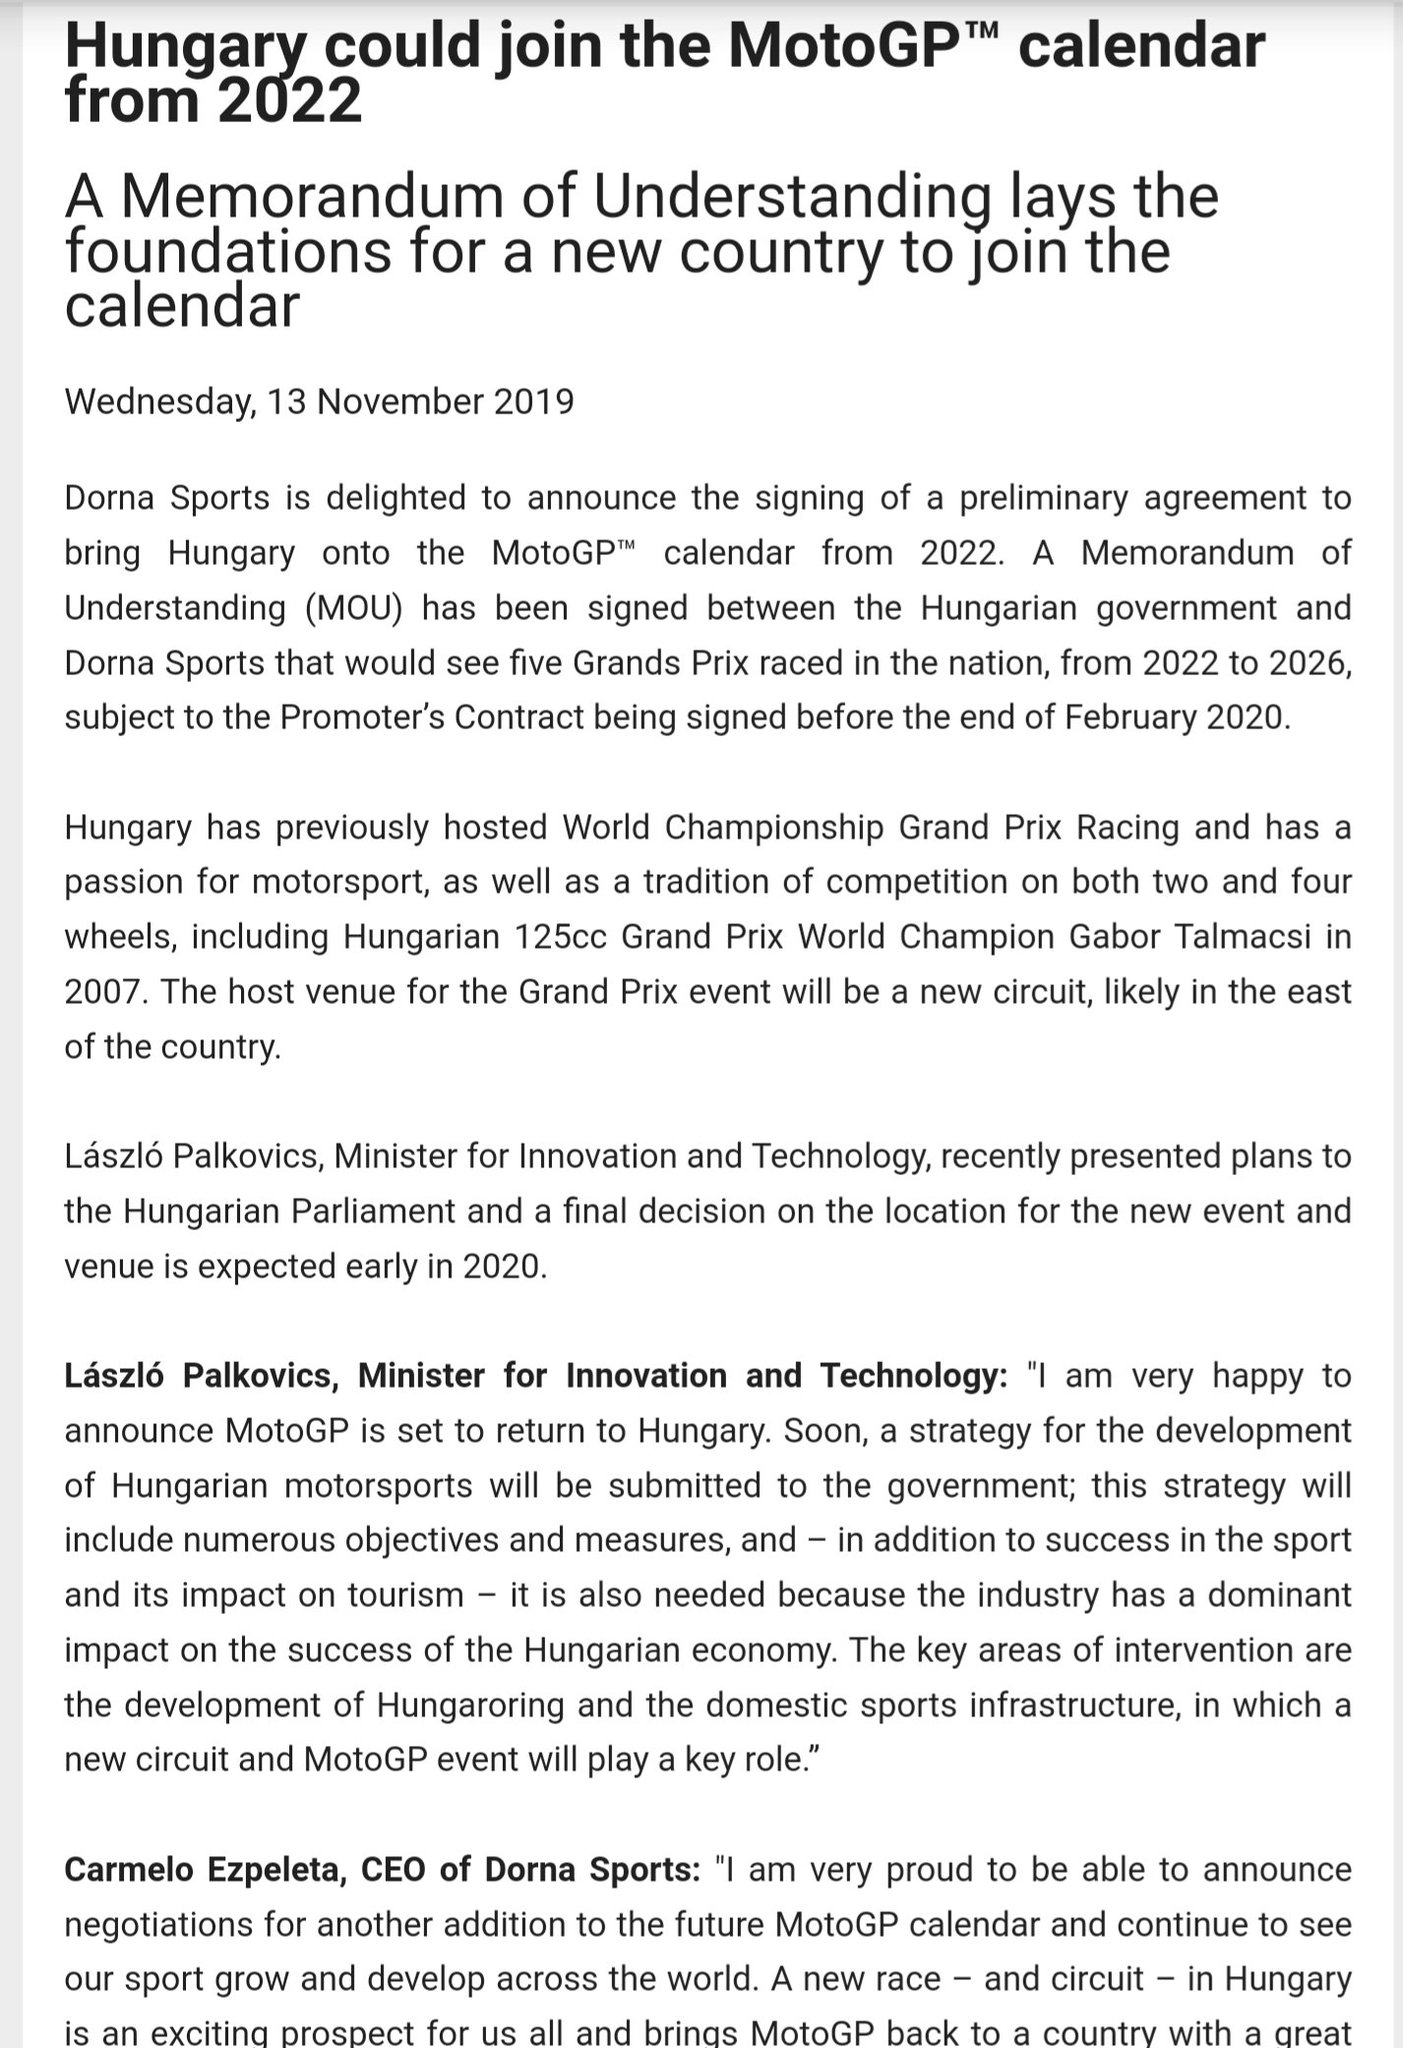 Motogp Calendar 2022.David Emmett On Twitter Hungary To Join The Motogp Calendar In 2022 We Have Heard This One Before A New Circuit To Be Built In The East Of The Country Of Course